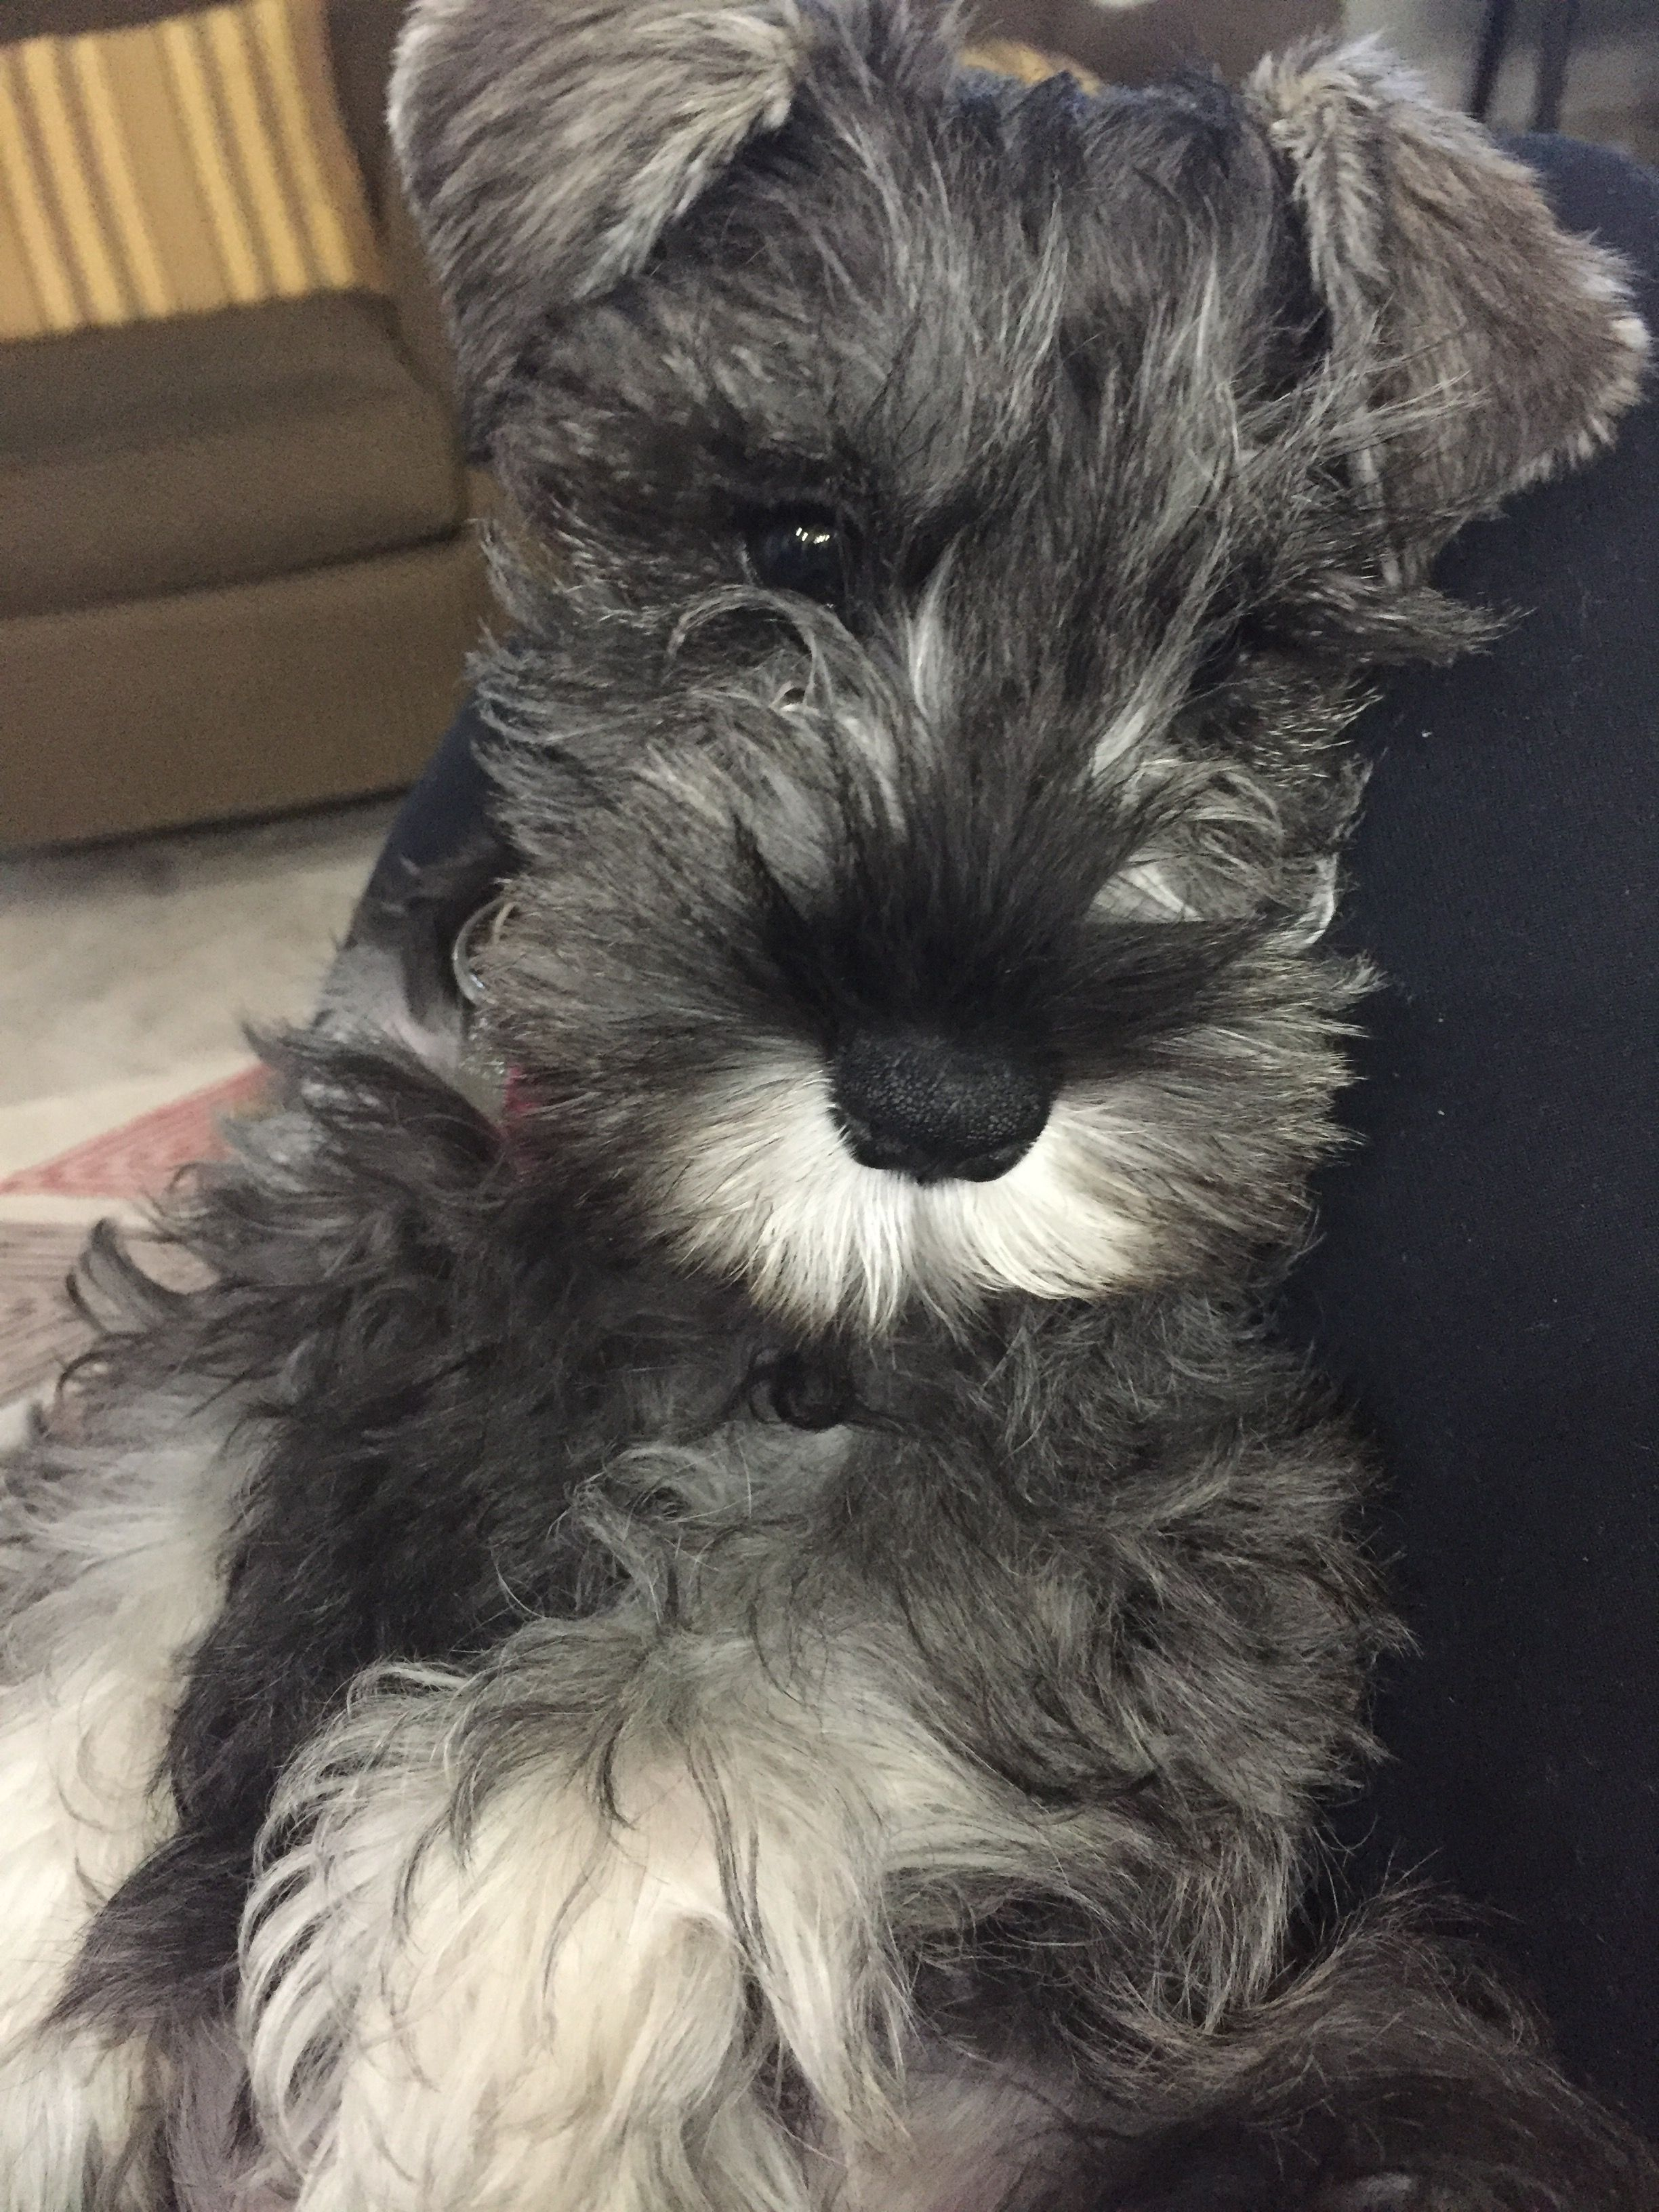 On My Way Home To My Little Schnauzer Haven T Seen Him For A Couple Days Hopefully He Forgives Me Miniature Dog Breeds Schnauzer Puppy Cute Animal Pictures